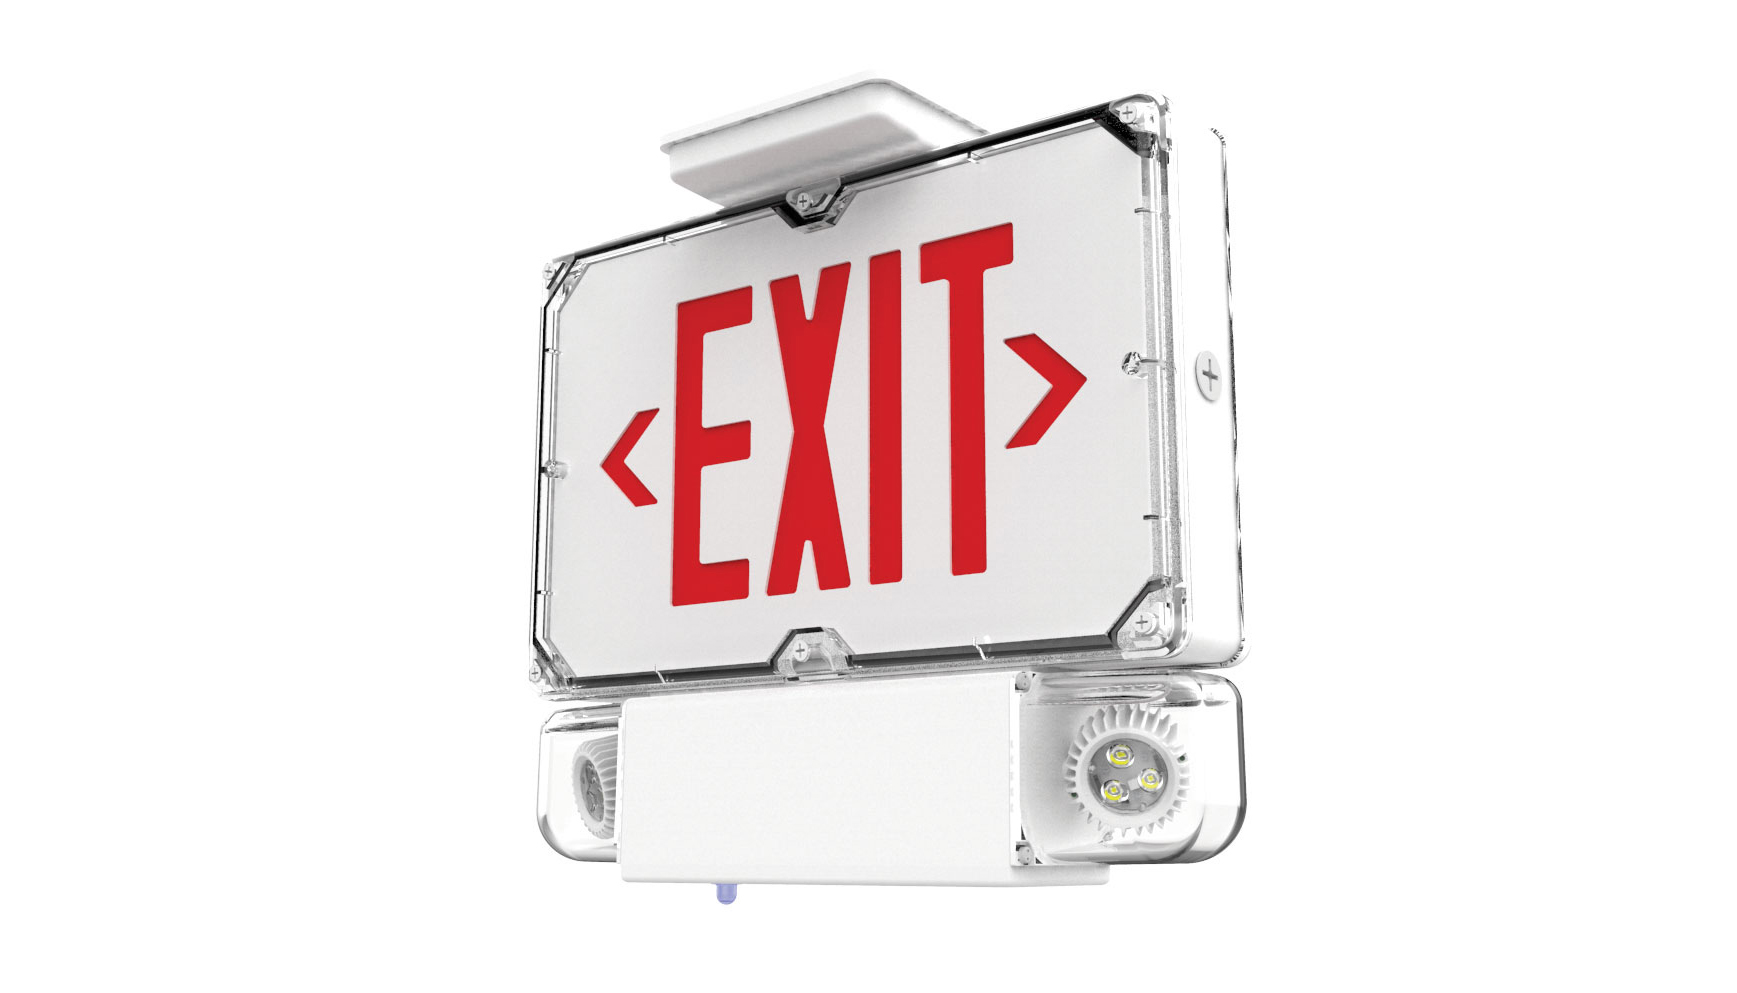 Hubbell's DYNC Combo Exit/Emergency Lighting Fixture